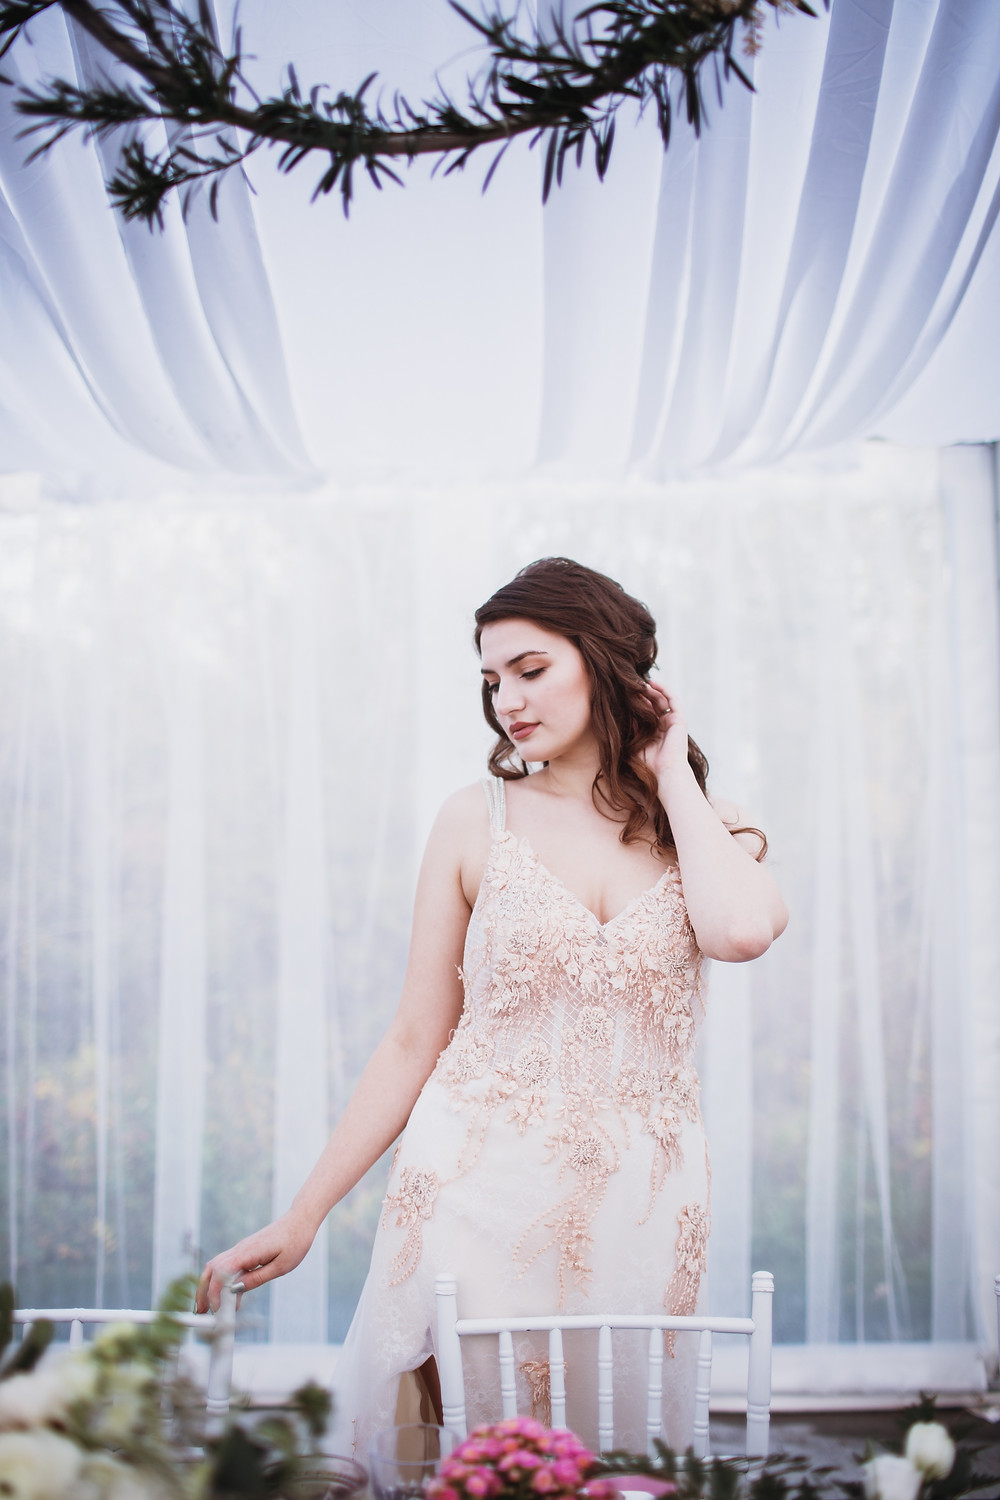 Fall bridal gown inspiration.